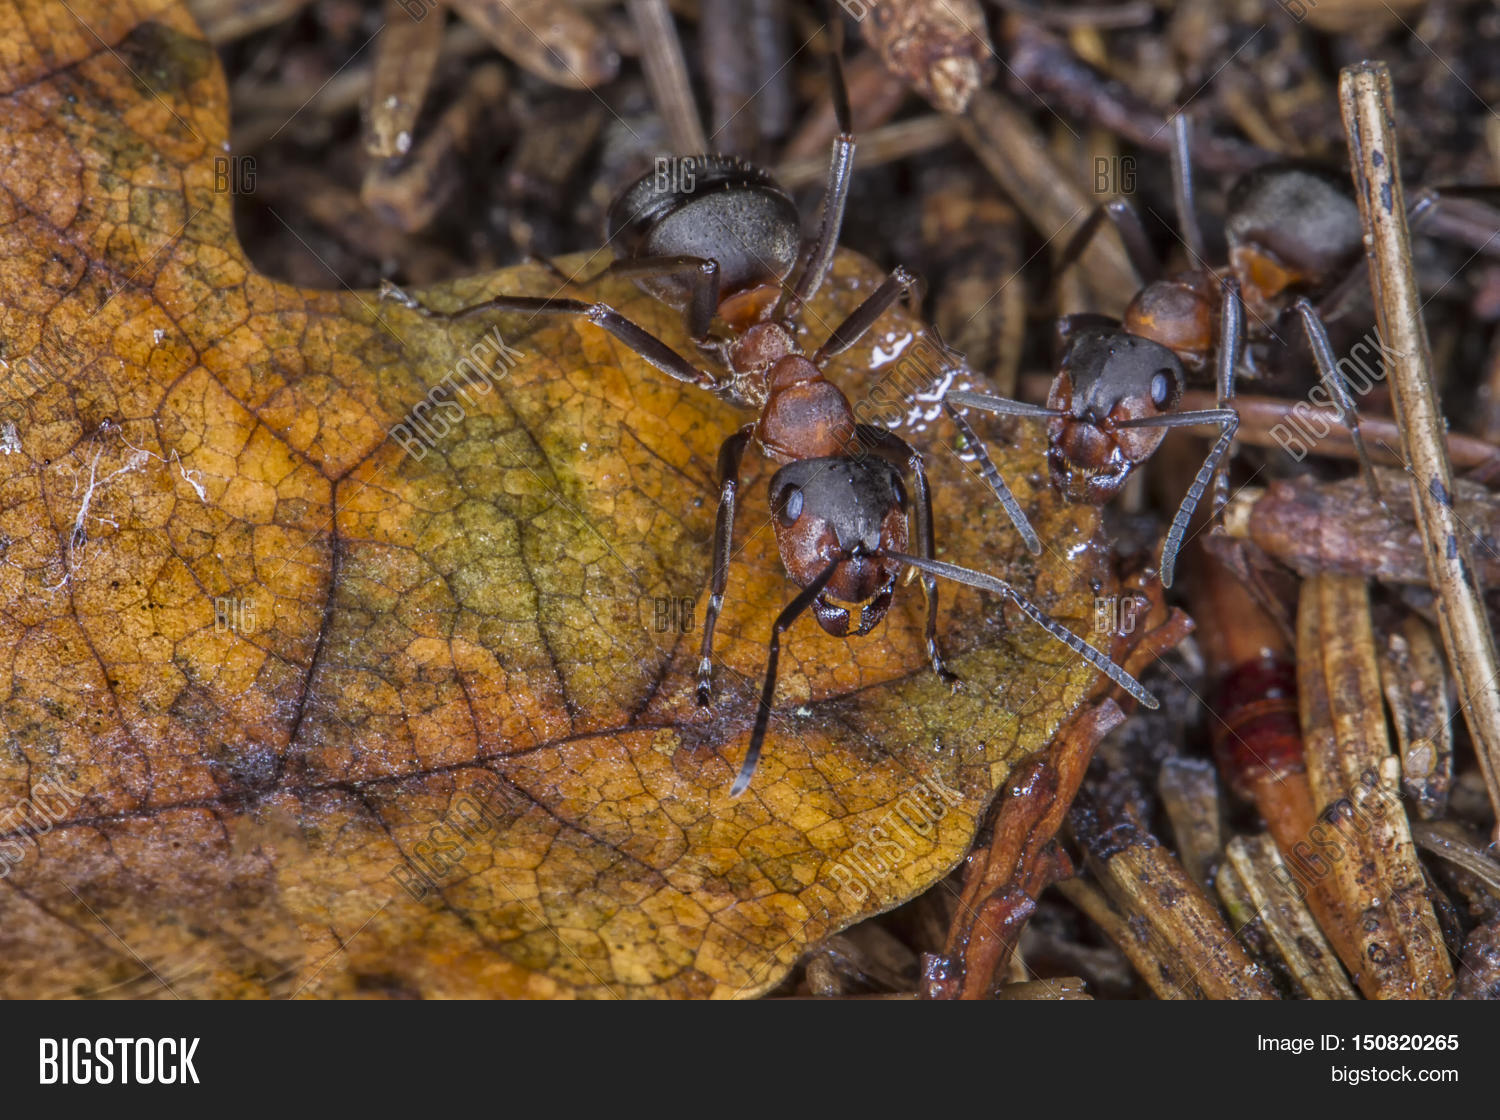 Ants On Anthill/ANT/ Image & Photo (Free Trial) | Bigstock